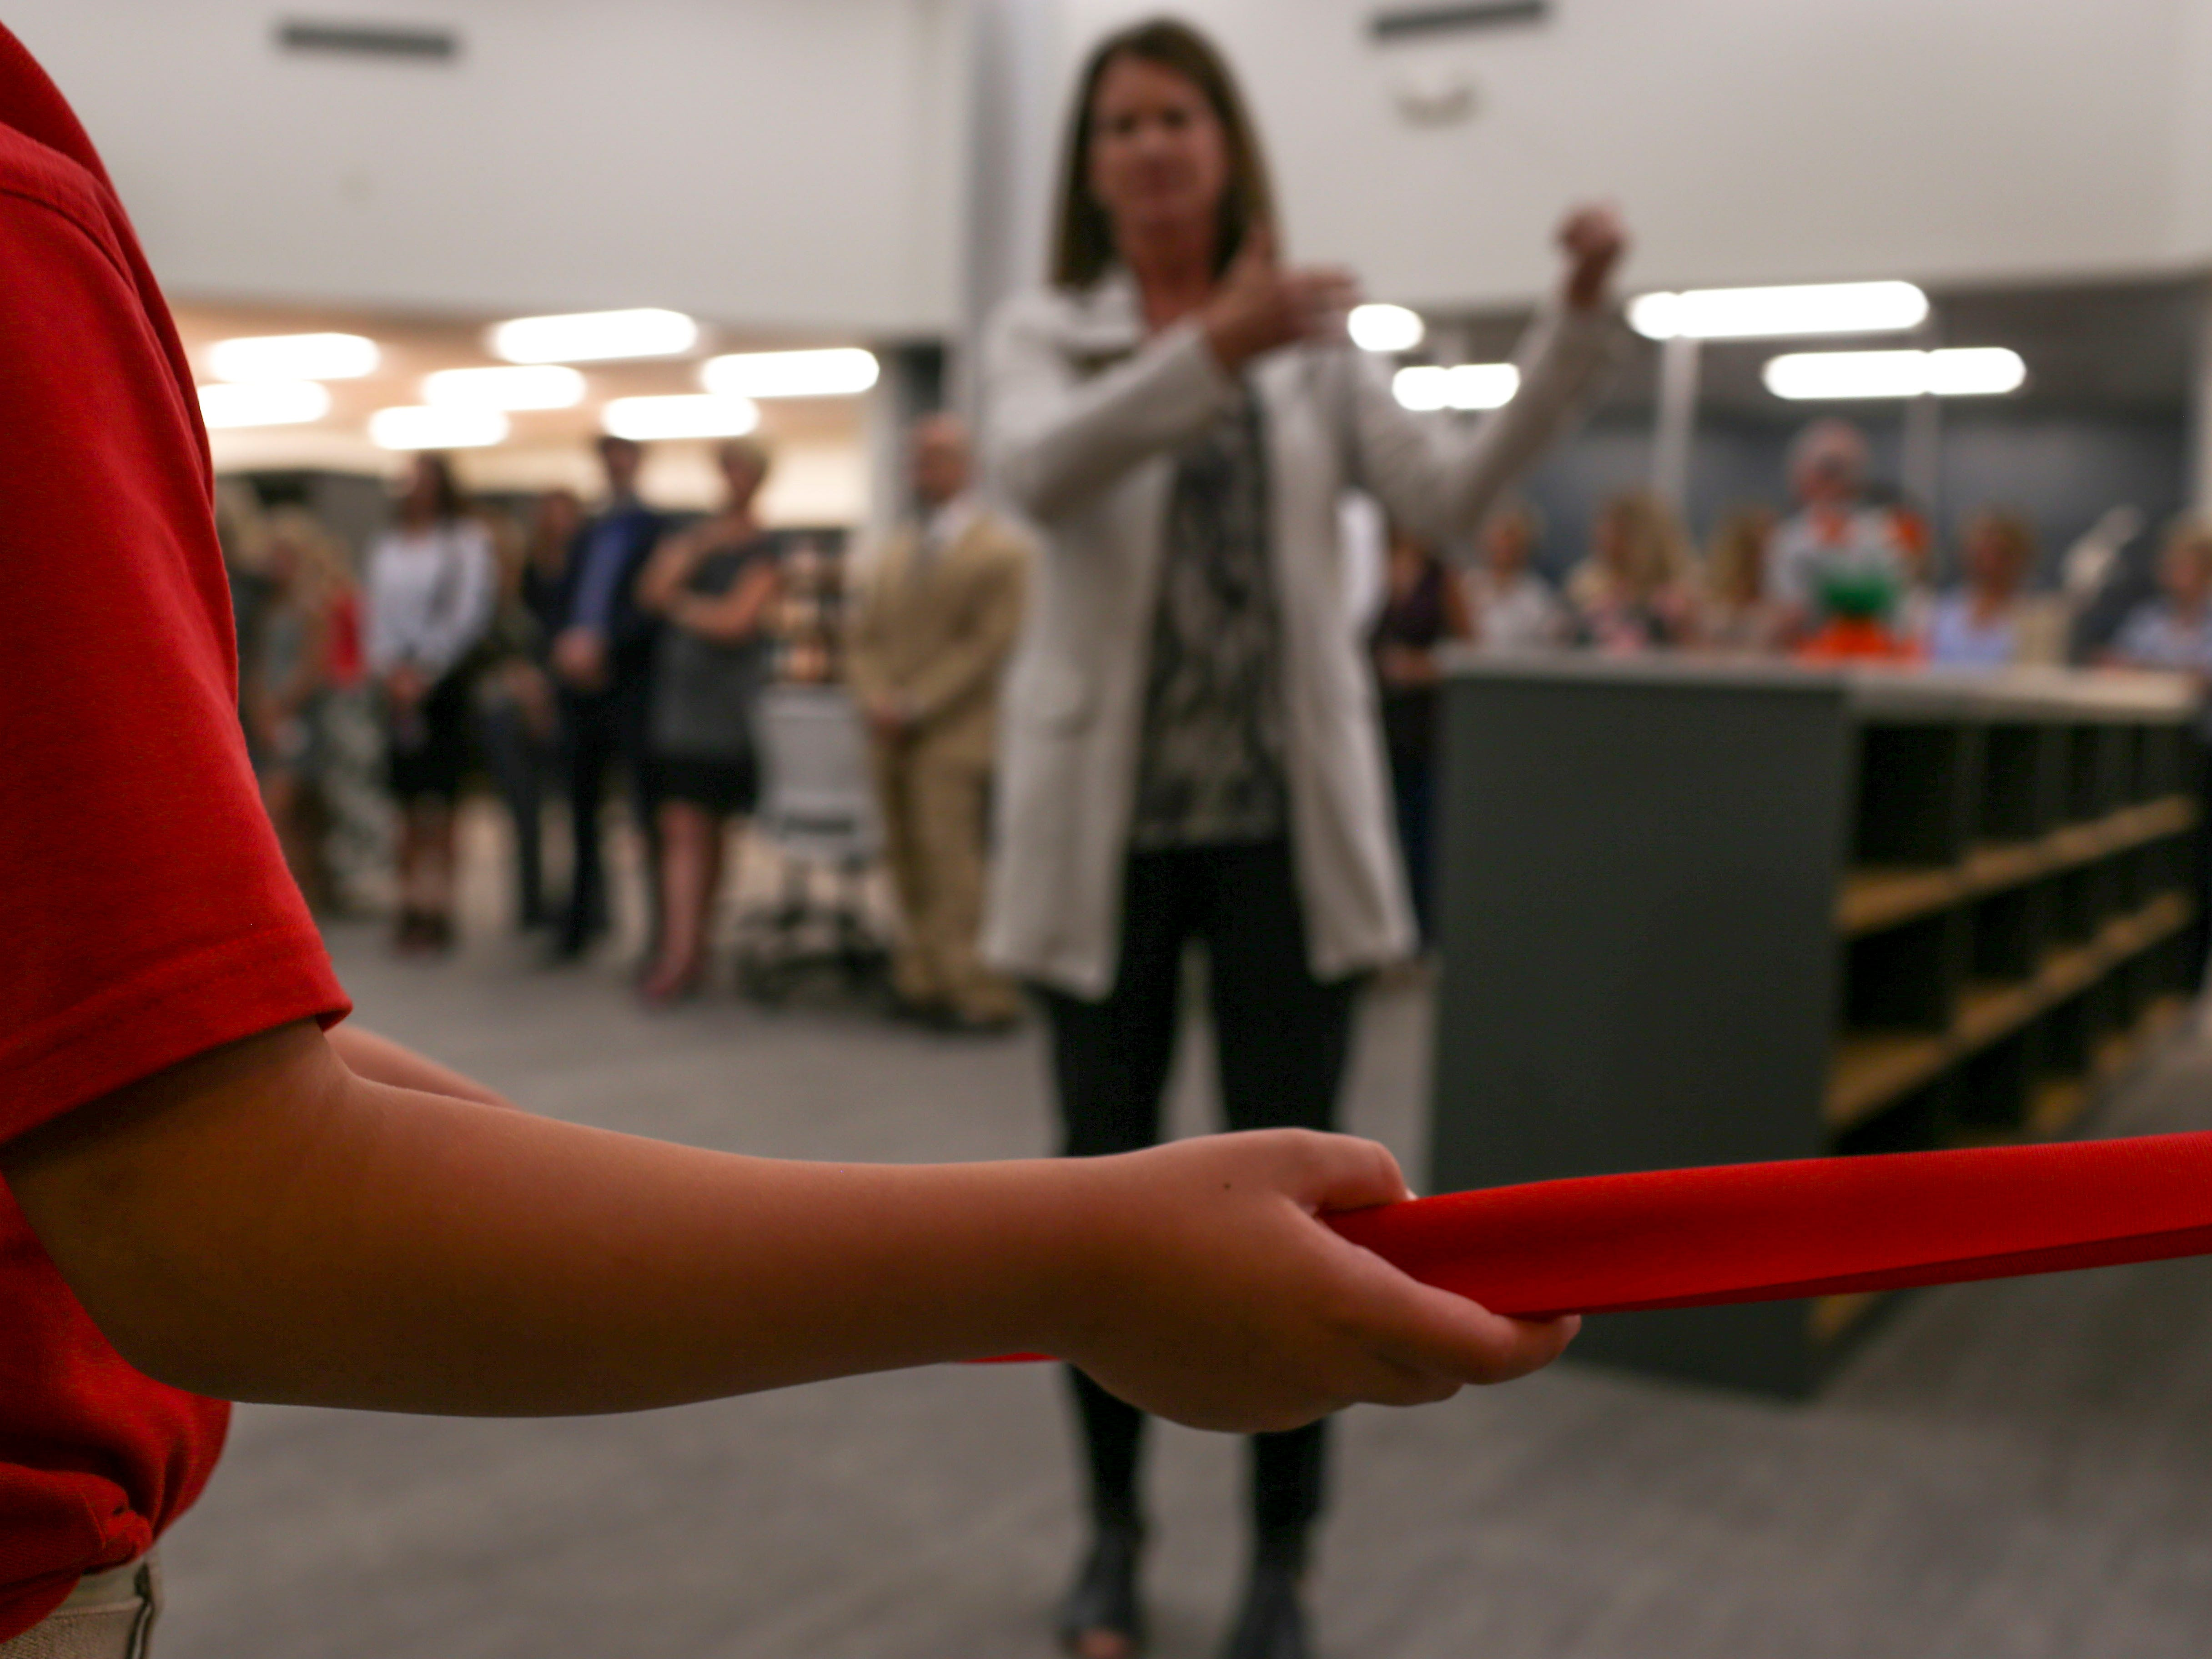 Patrick Campbell, 9, stretches out a red ribbon that will be cut to mark the opening of a new library at University School of Jackson in Jackson, Tenn., on Monday, Aug. 20, 2018.